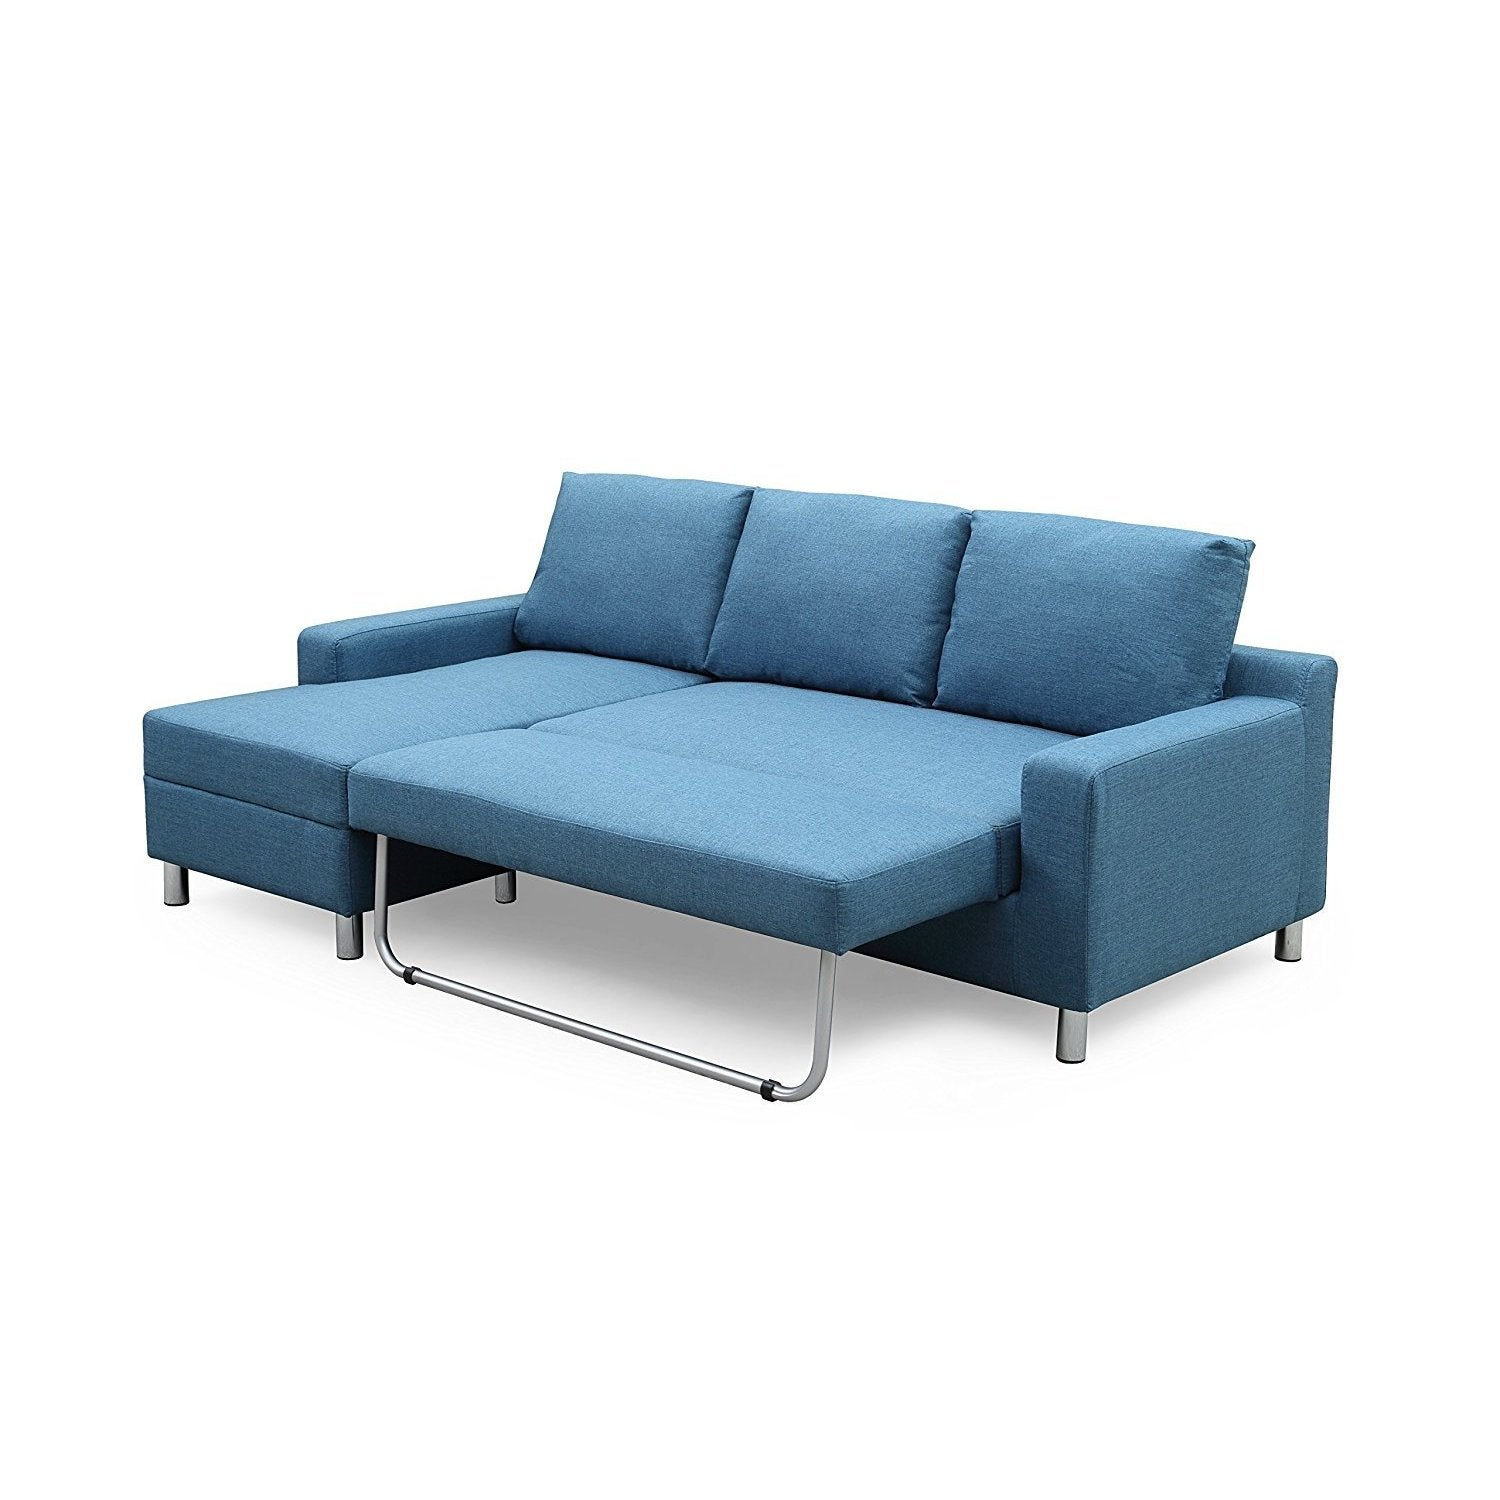 out storage sectional tufts fine coaster item sofa collections with furniture bed lsg and gus sleeper pull